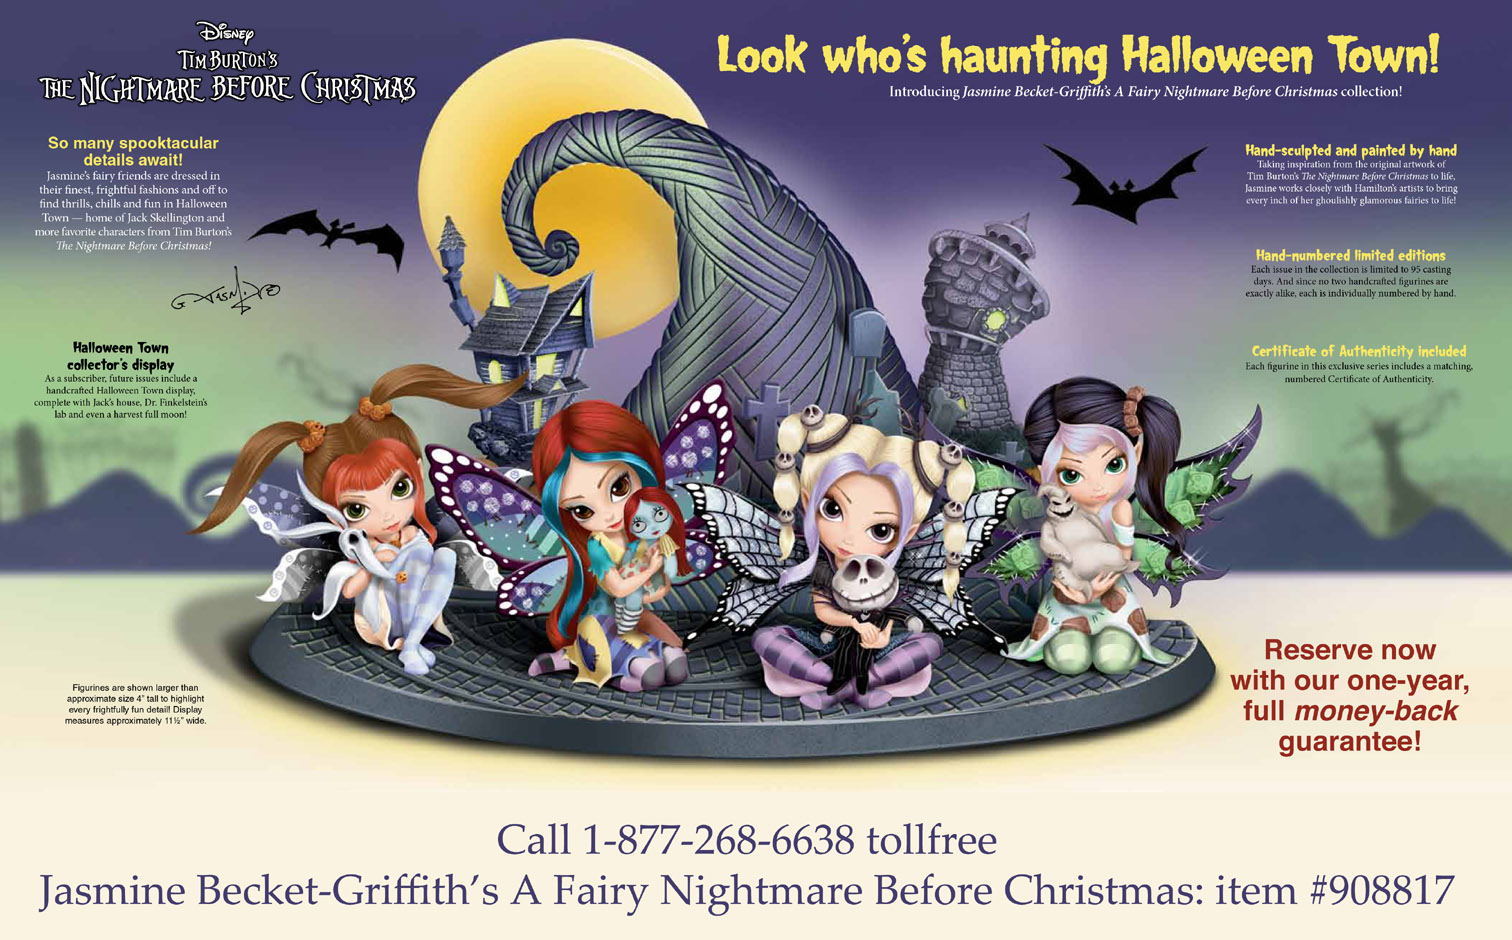 Nightmare Before Christmas - Jasmine Becket-Griffith